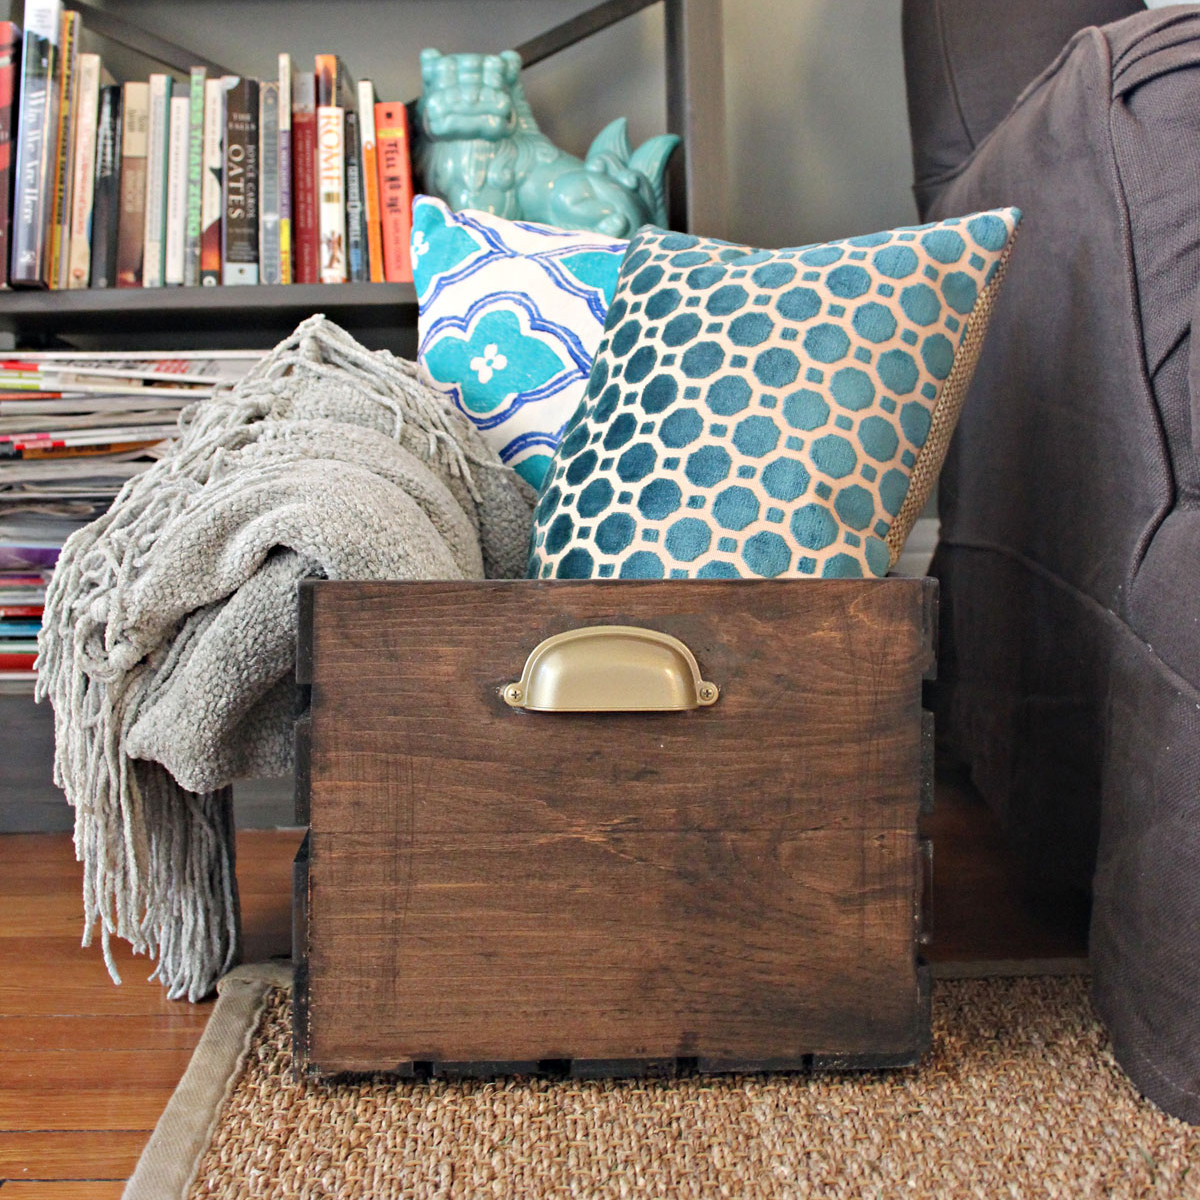 Customize a DIY Wooden Storage Crate